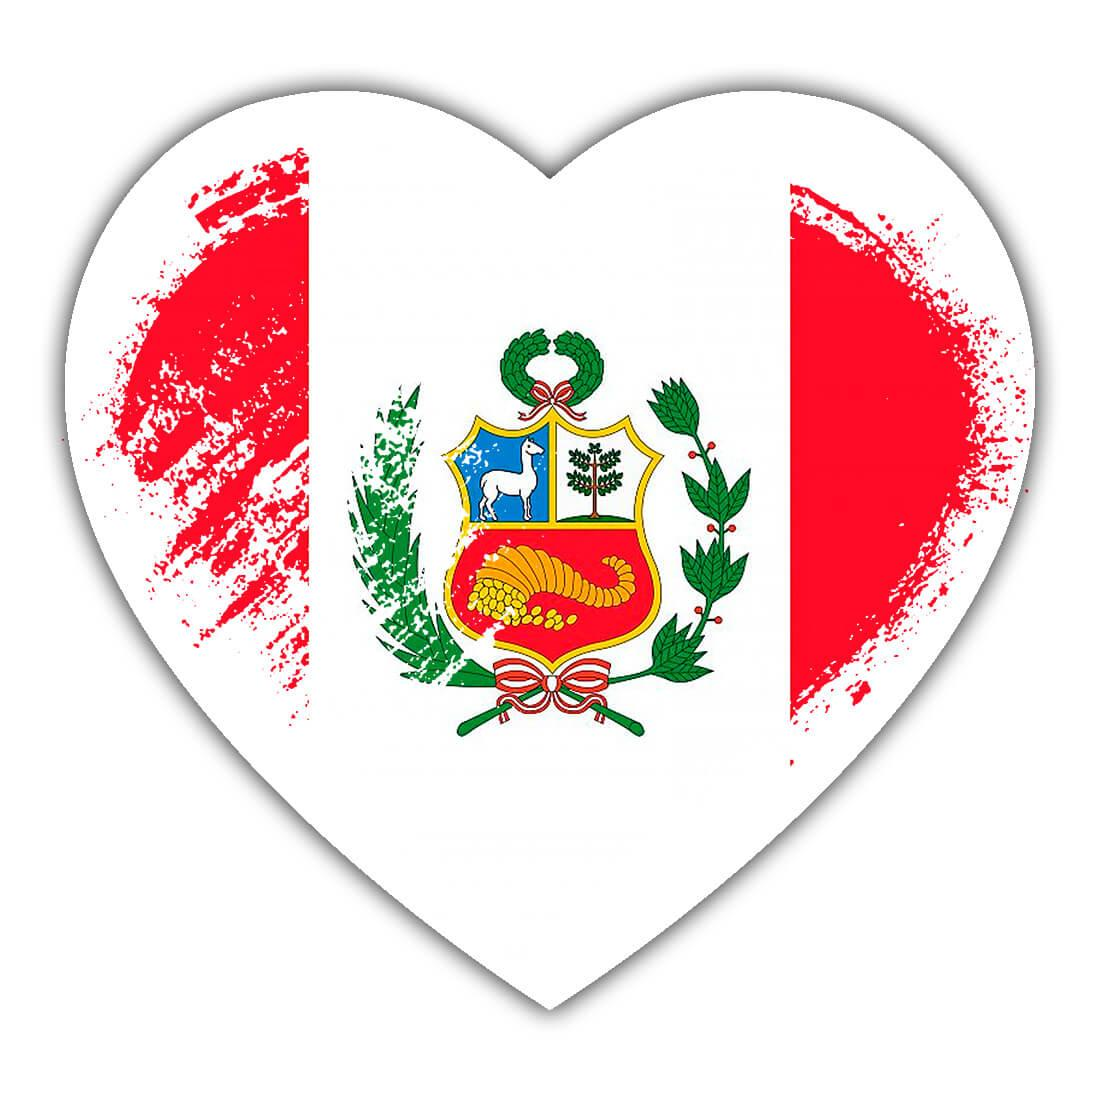 Peruvian Heart : Gift Sticker Peru Country Expat Flag Patriotic Flags National